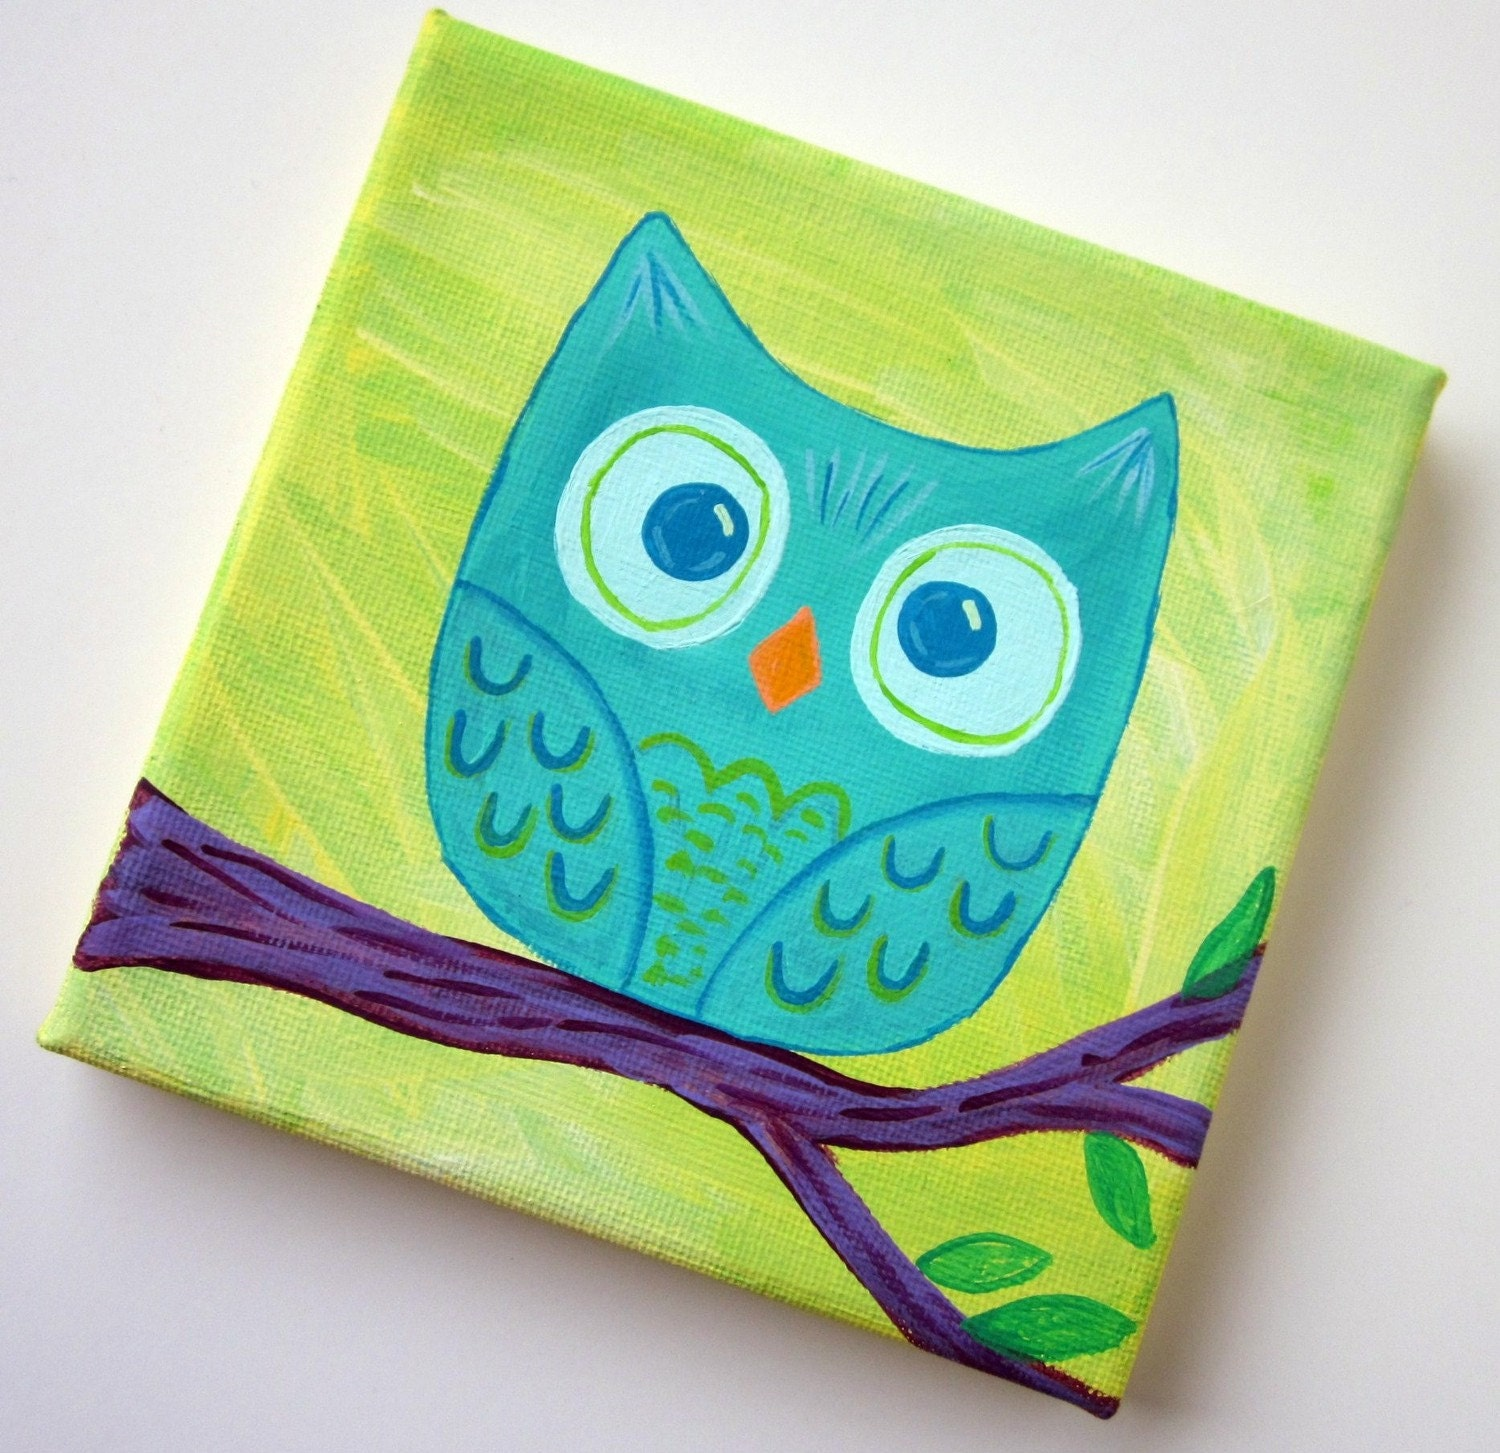 Teal Owl Tree Branch Original Acrylic Painting 5 x 5 inch